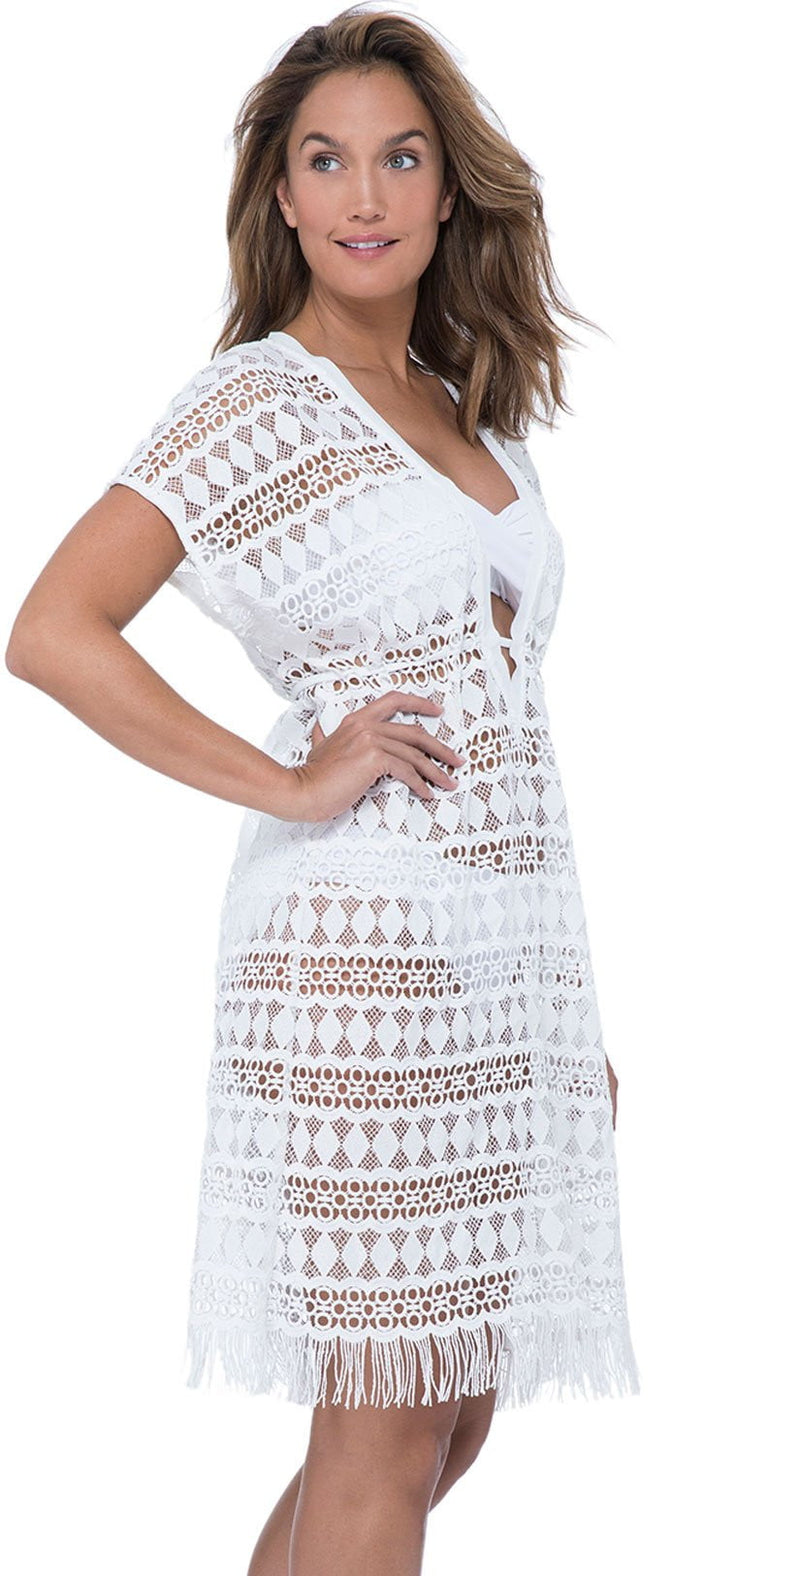 Profile by Gottex Tutti Frutti Crochet Dress in White E940 3024 100: